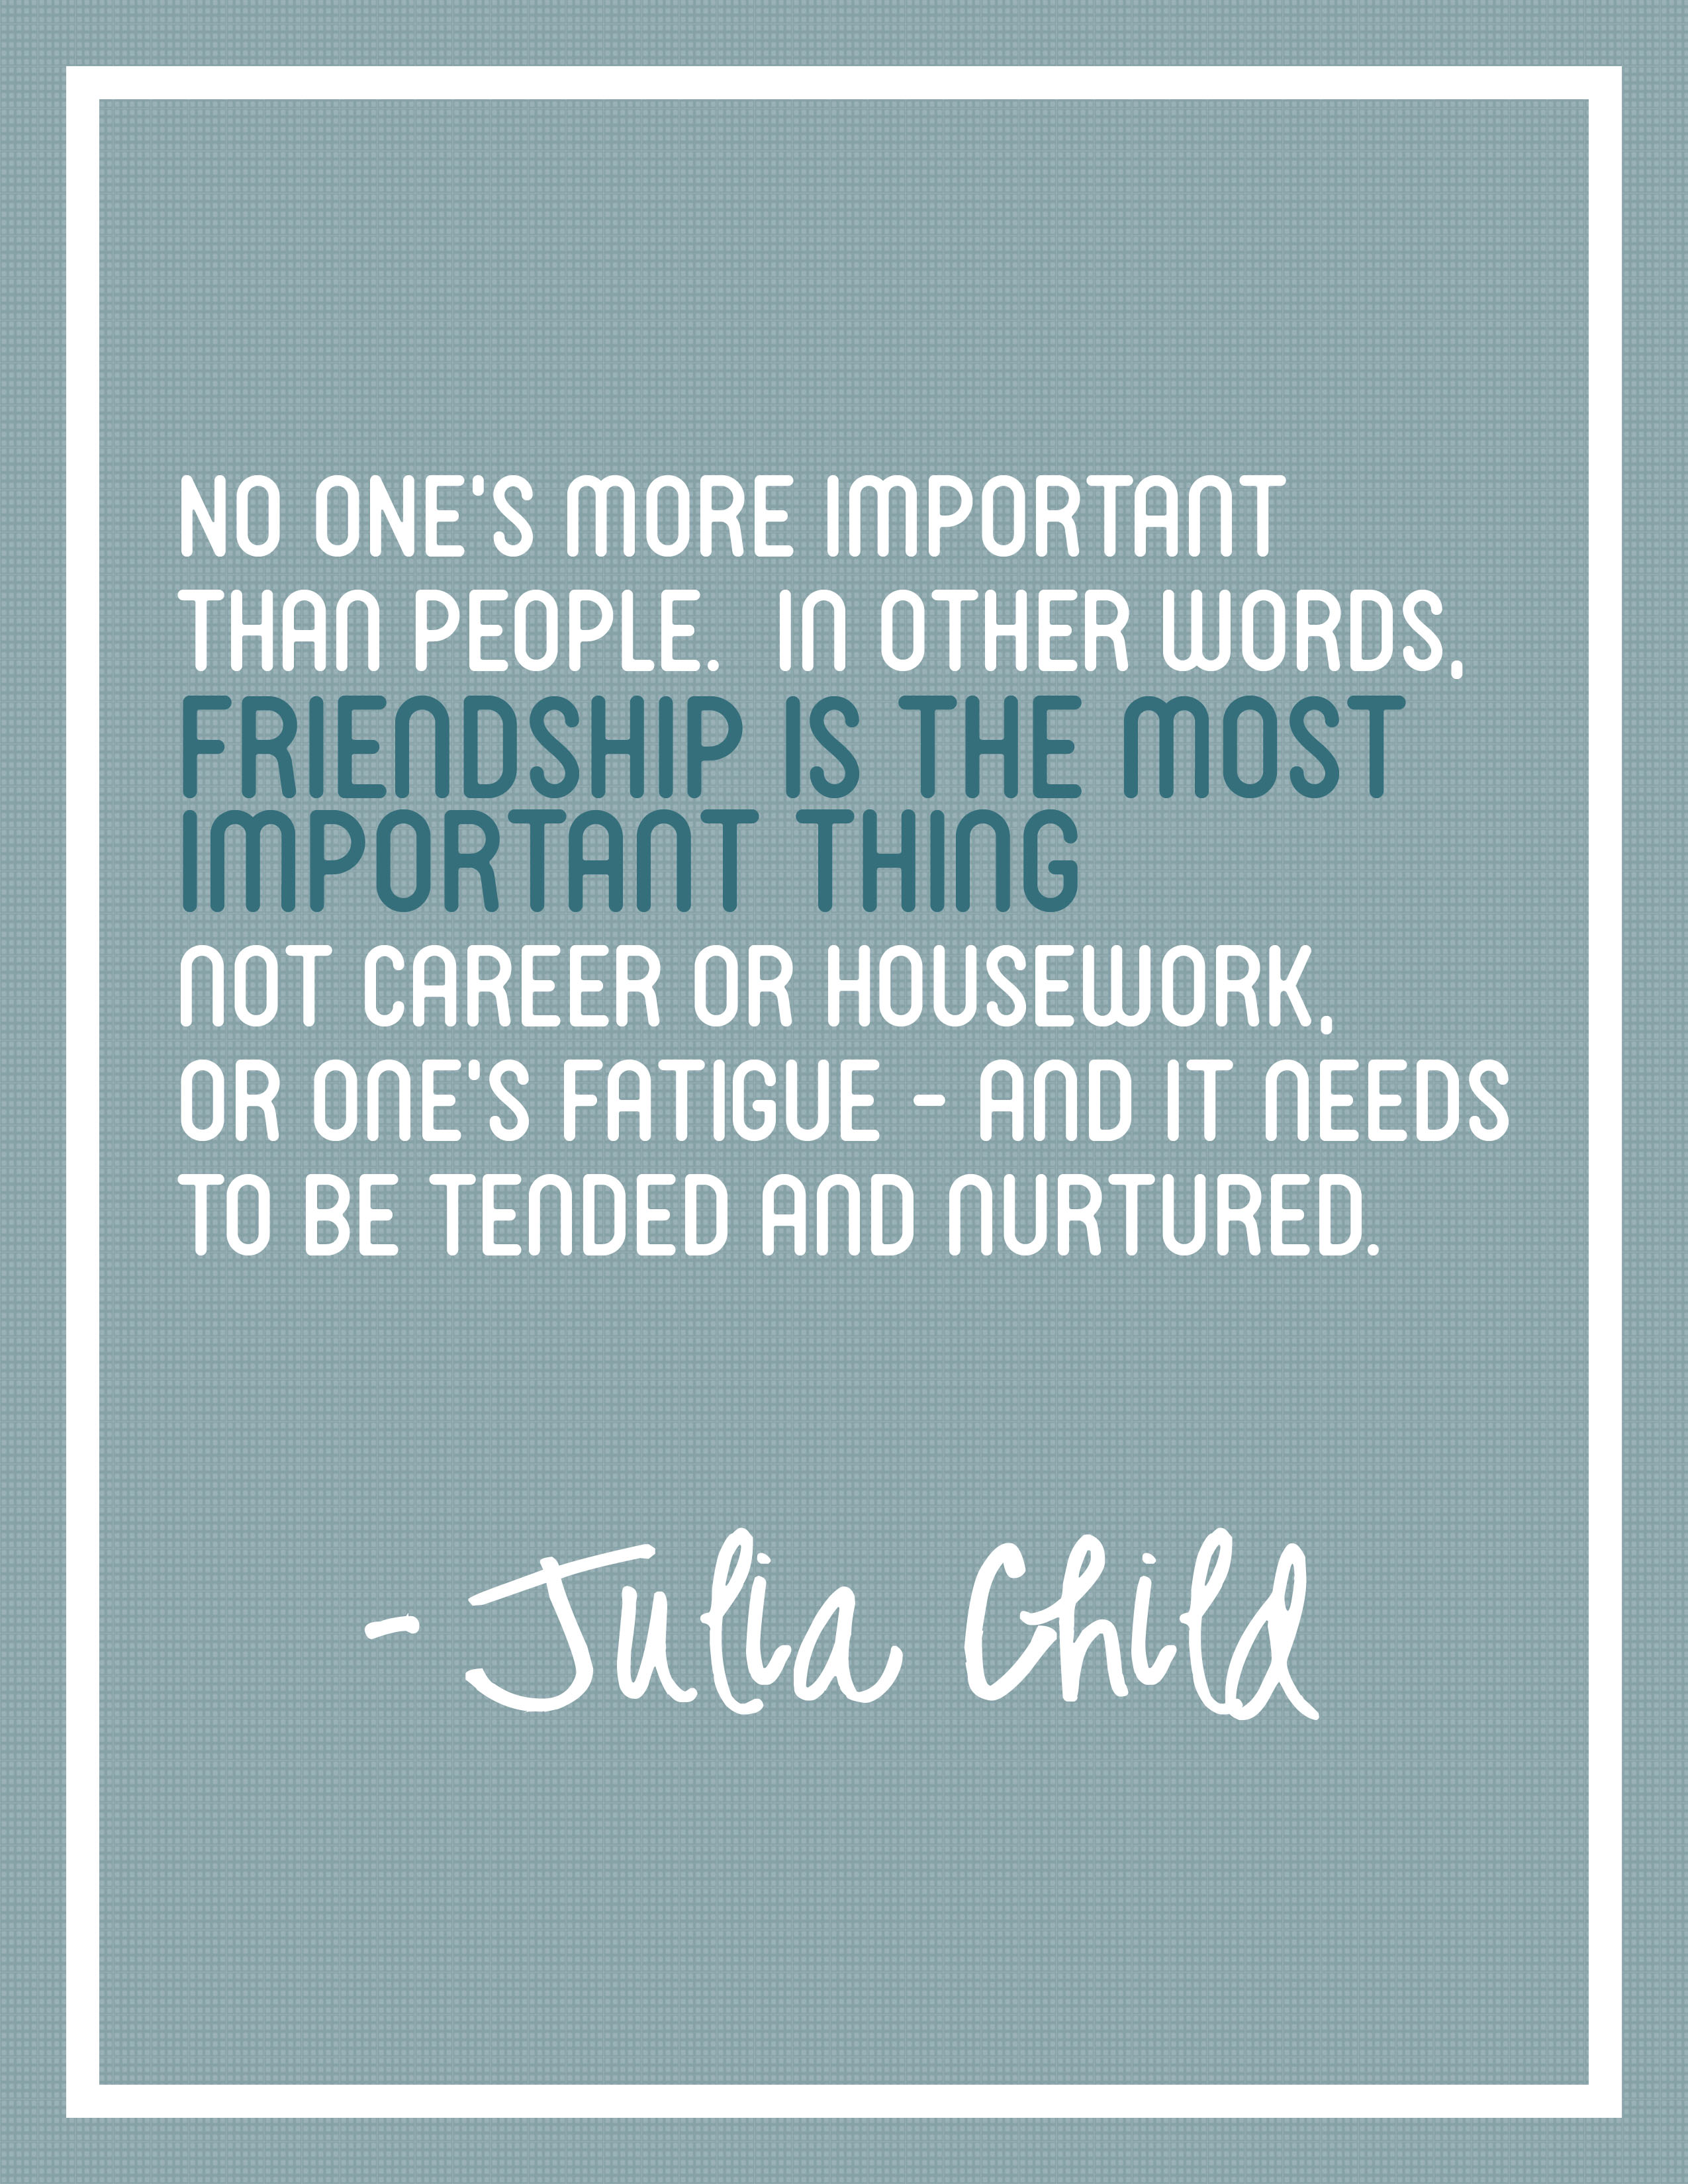 Freebie friday julia child quote posters thecreativestack happy freebie friday advertisements voltagebd Choice Image